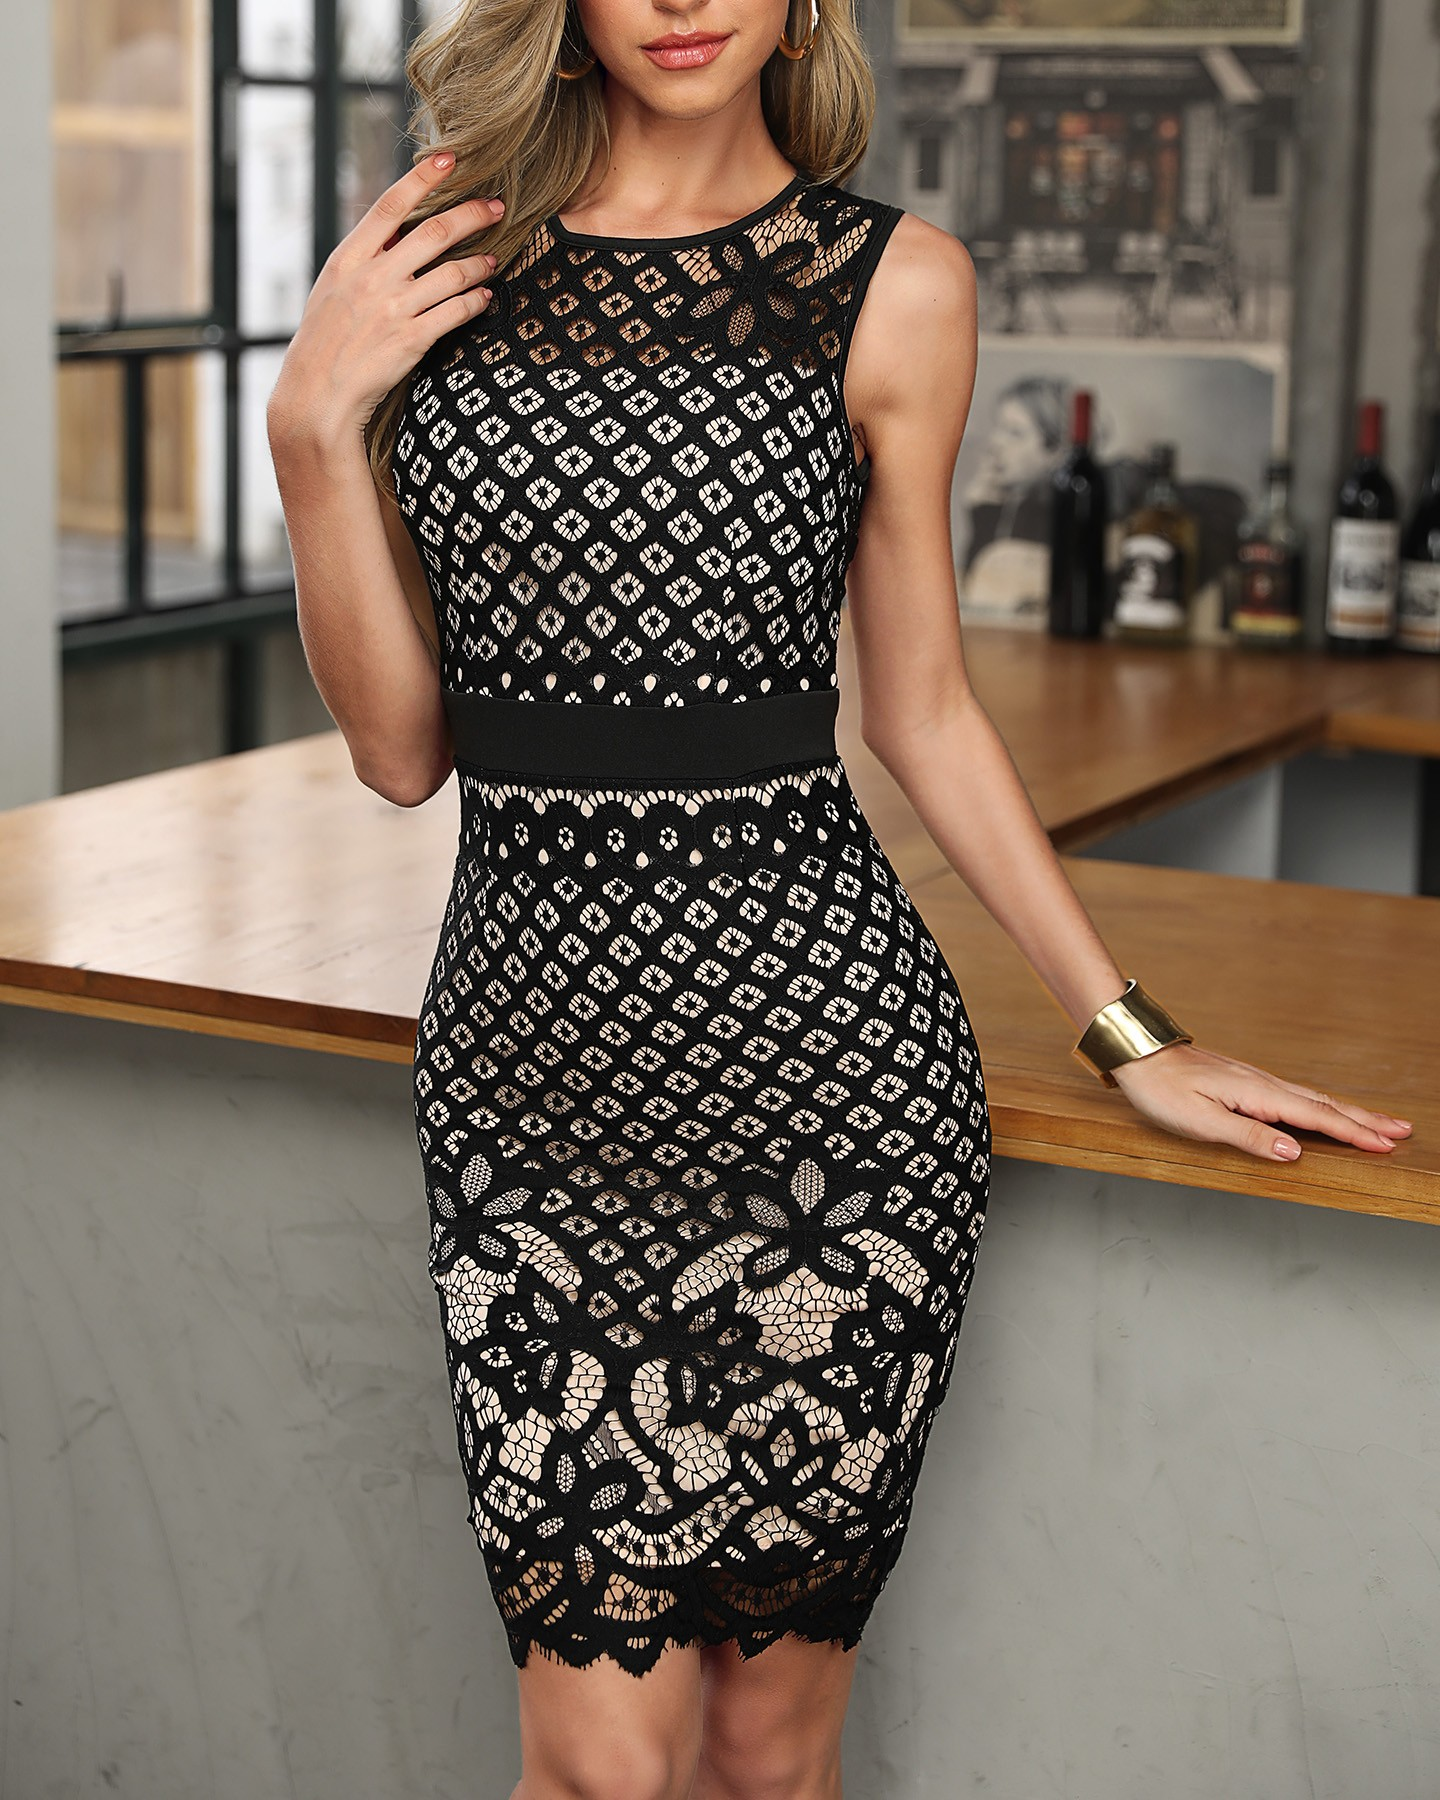 Black Hollow Out Lace Stitching Party Dress 6